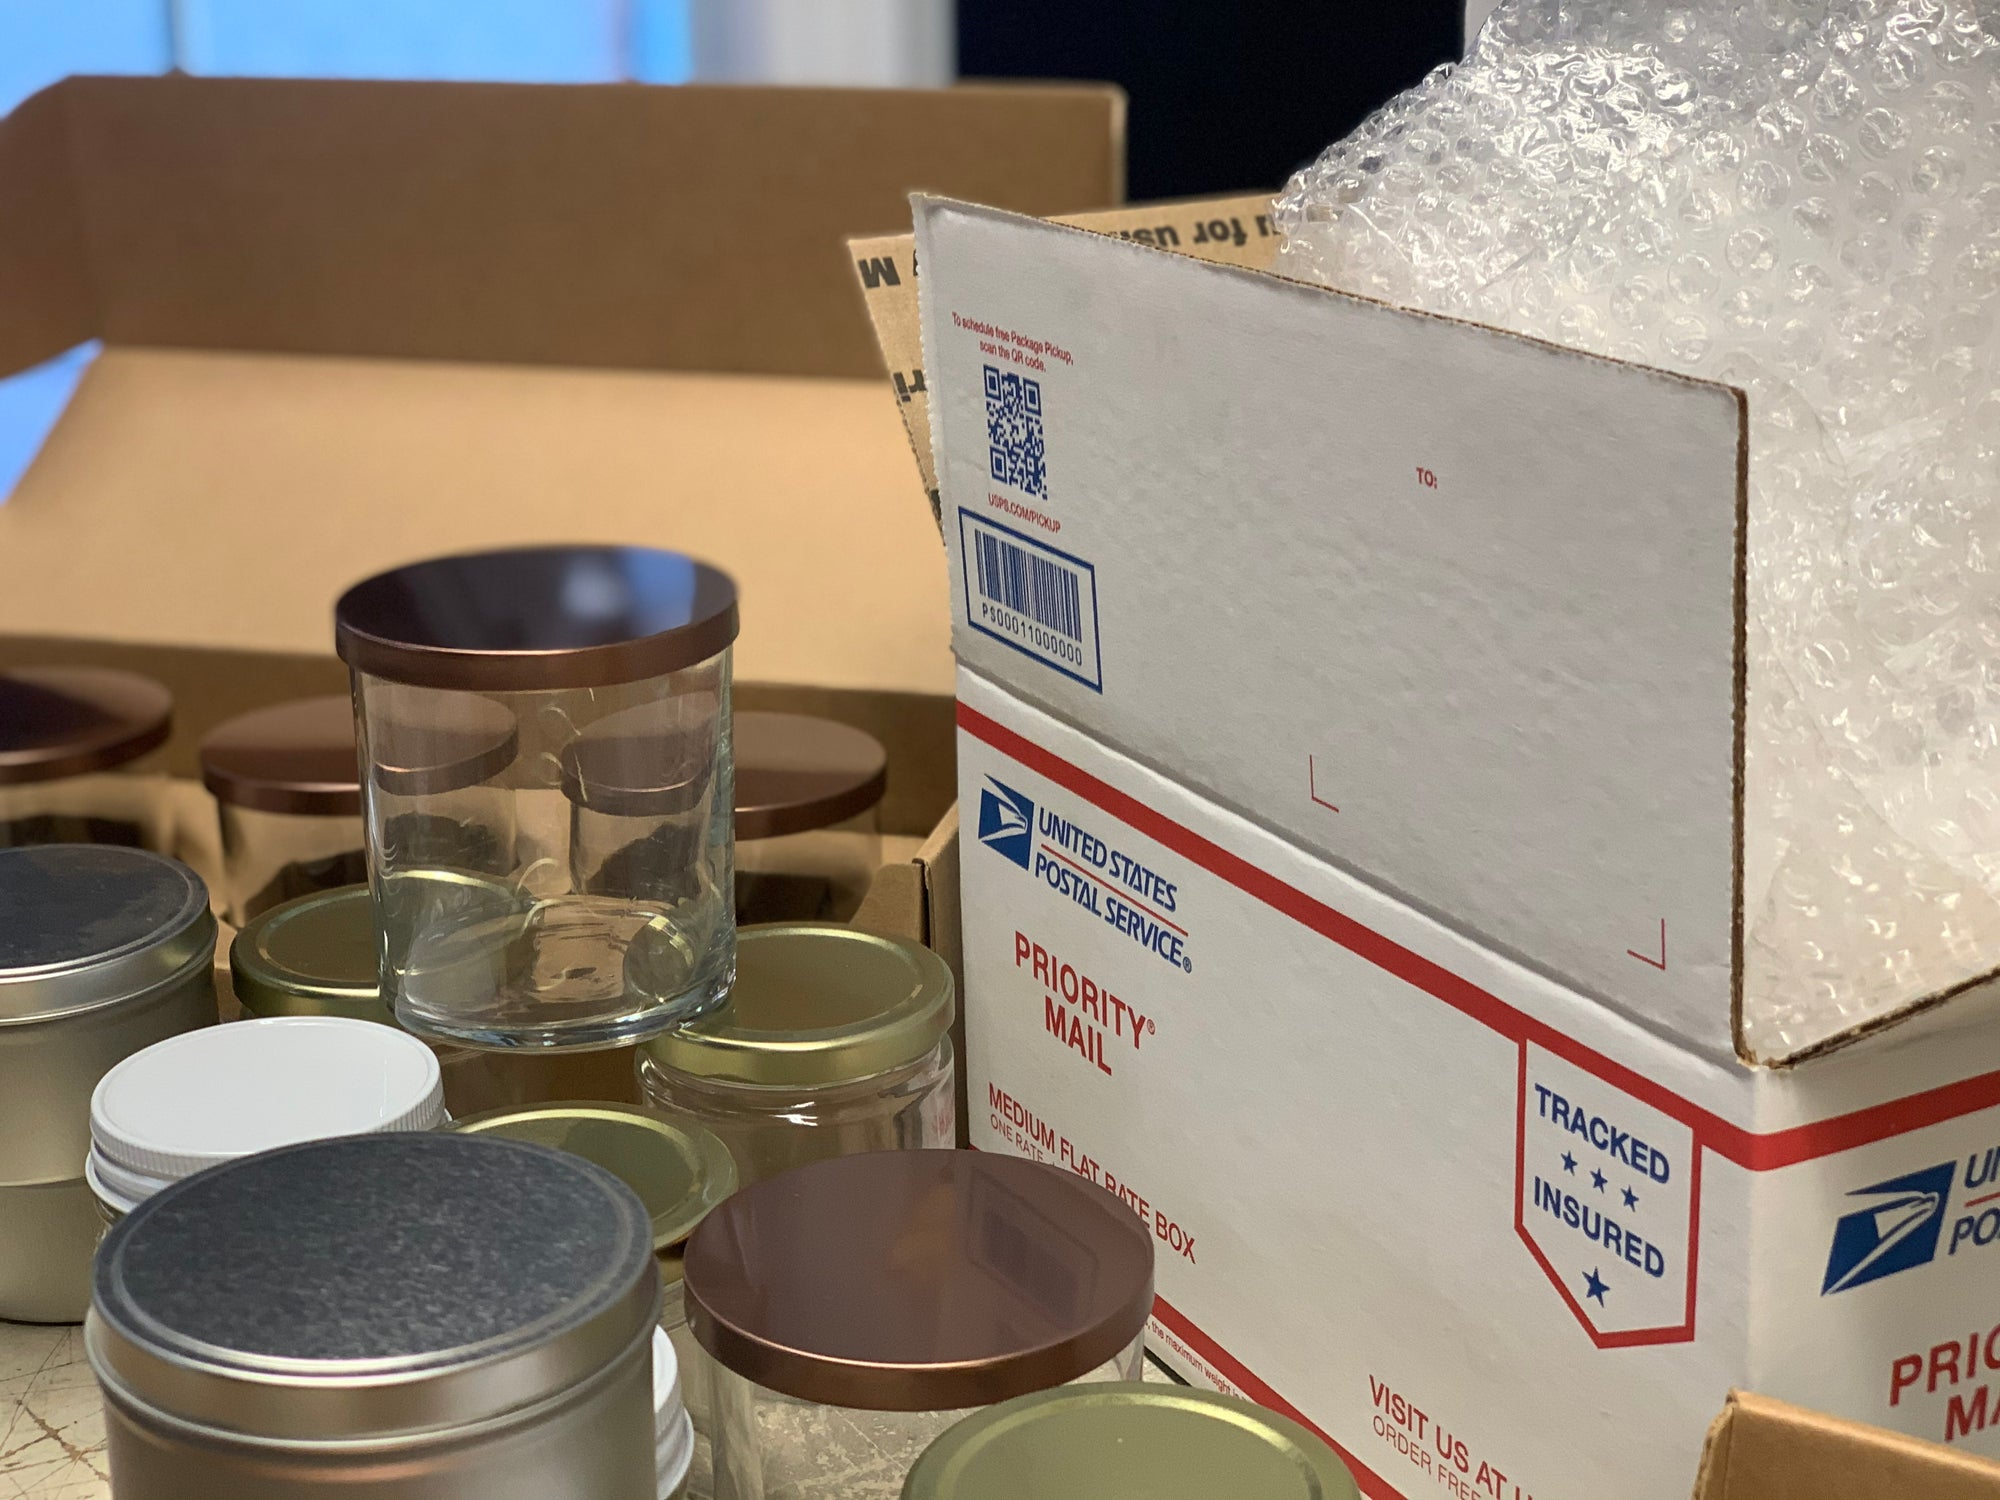 Flat Rate or Flush? - A Detailed Cost Comparison Between USPS® Flat Rate Shipping and Flush Packaging